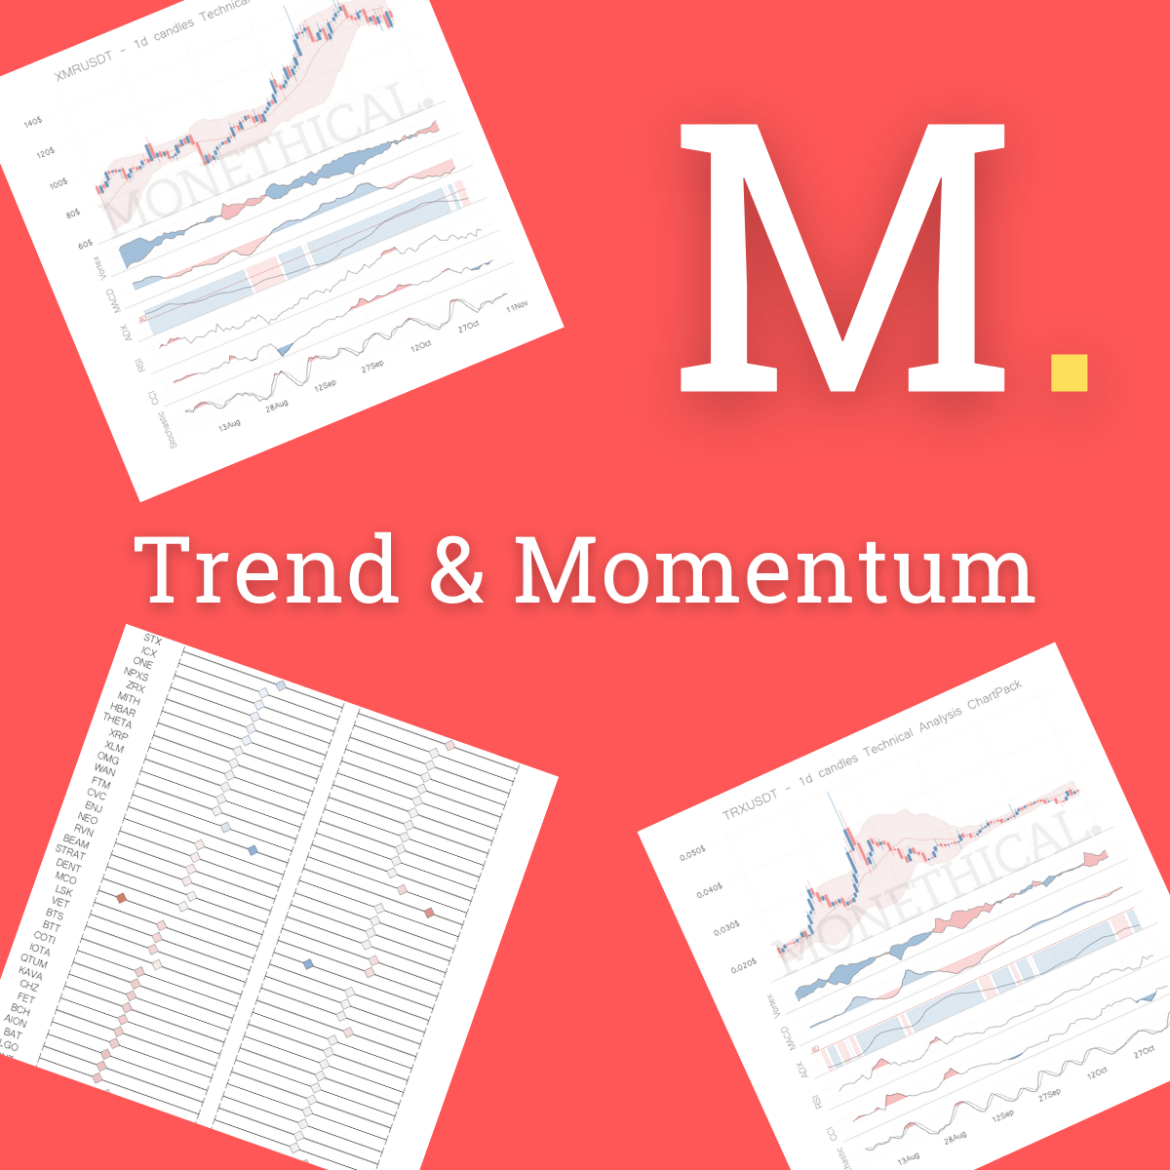 Daily top cryptos trend & momentum, December 13th